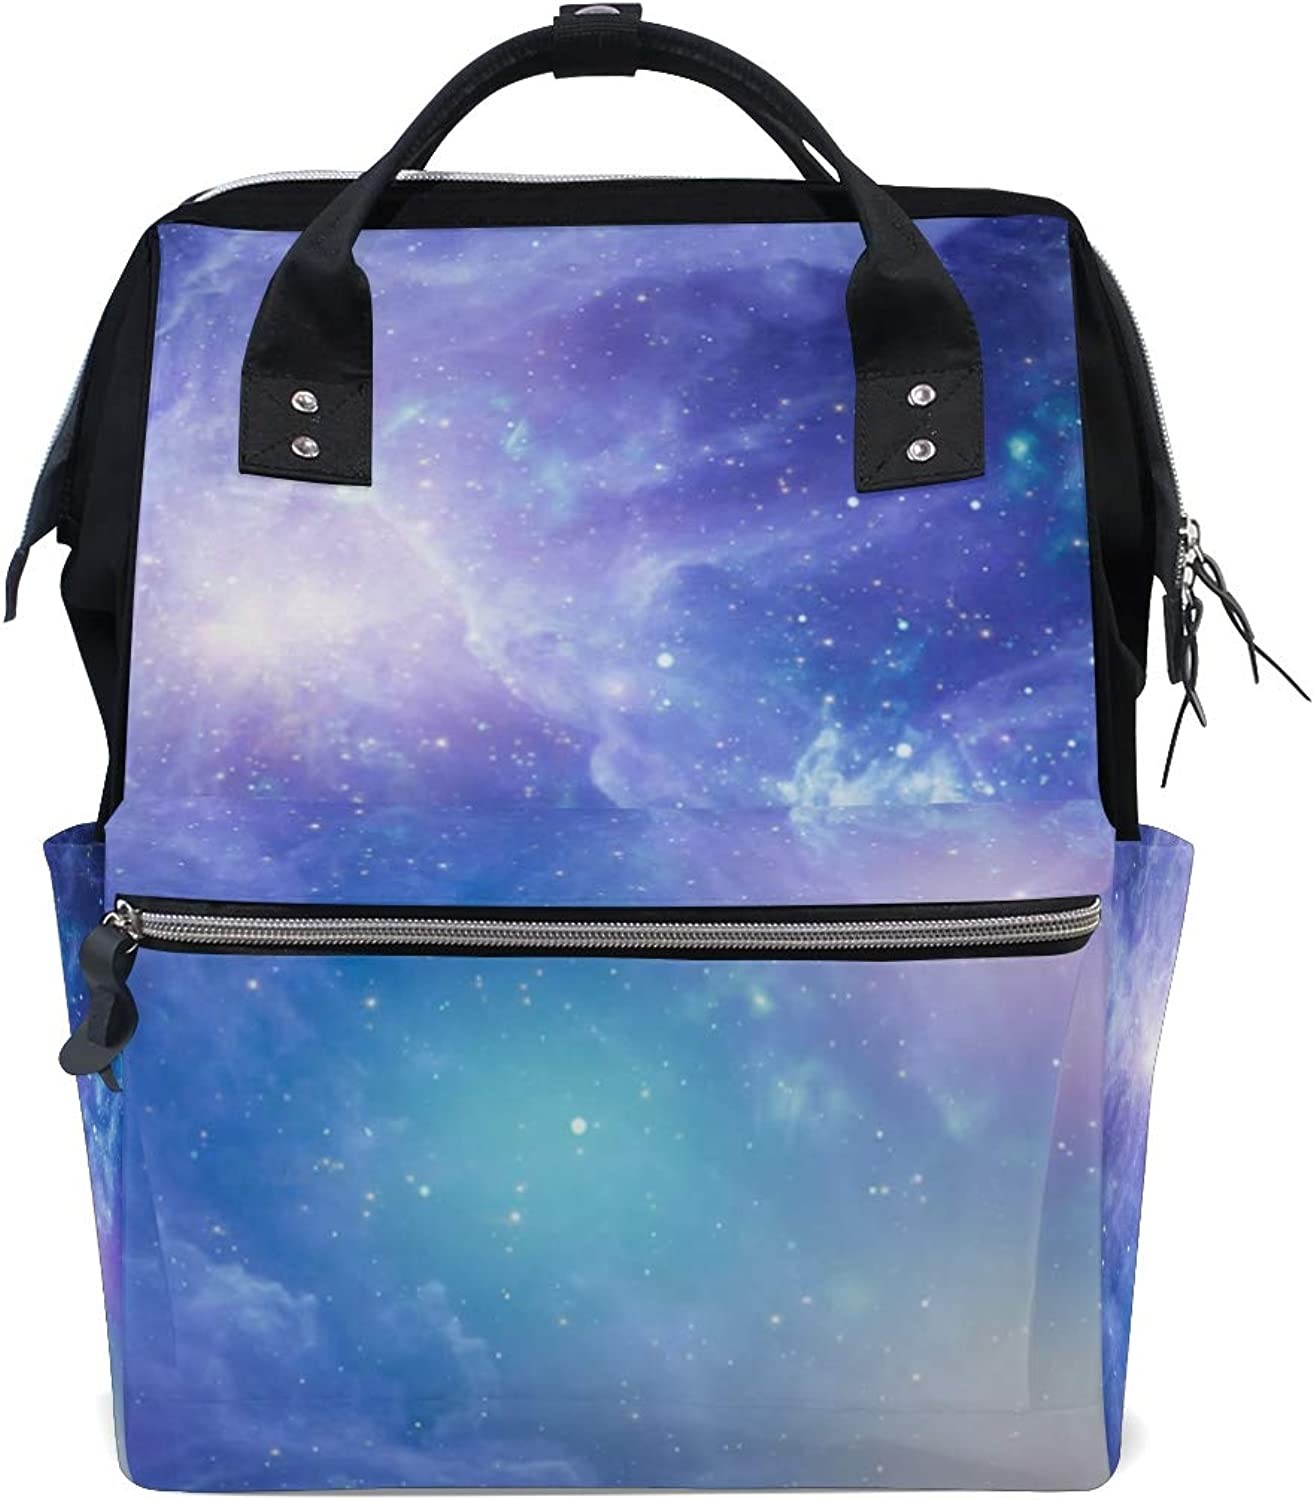 ColourLife Diaper bag Backpack Nebula And Galaxies In Space Tote Bag Casual Daypack Multifunctional Nappy Bags